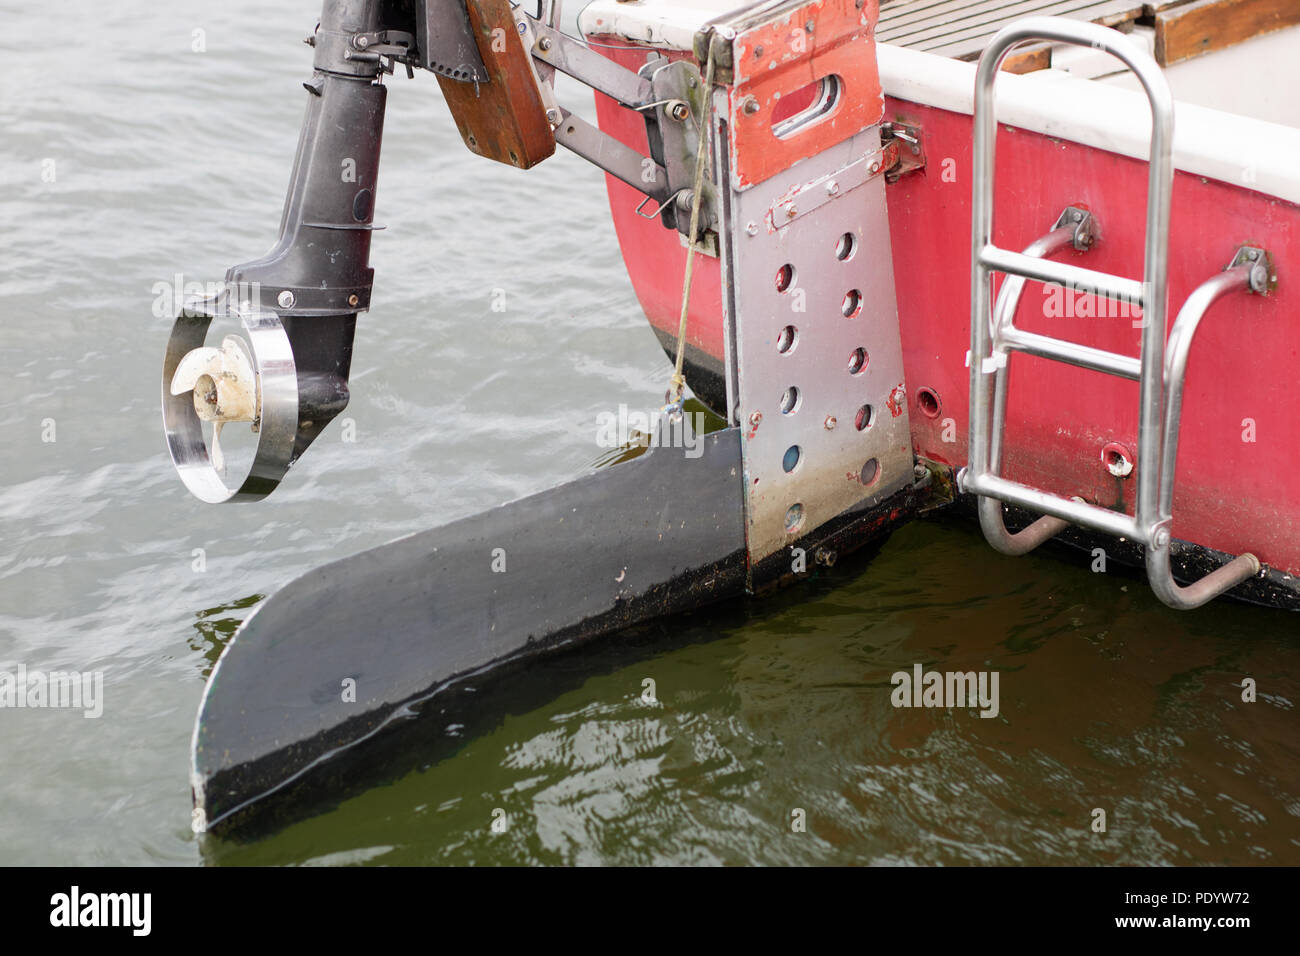 Outboard Engine And Yacht S Rudder Exhaust Propulsion For Inland Water Sailboat Season Of The Summer Stock Photo Alamy